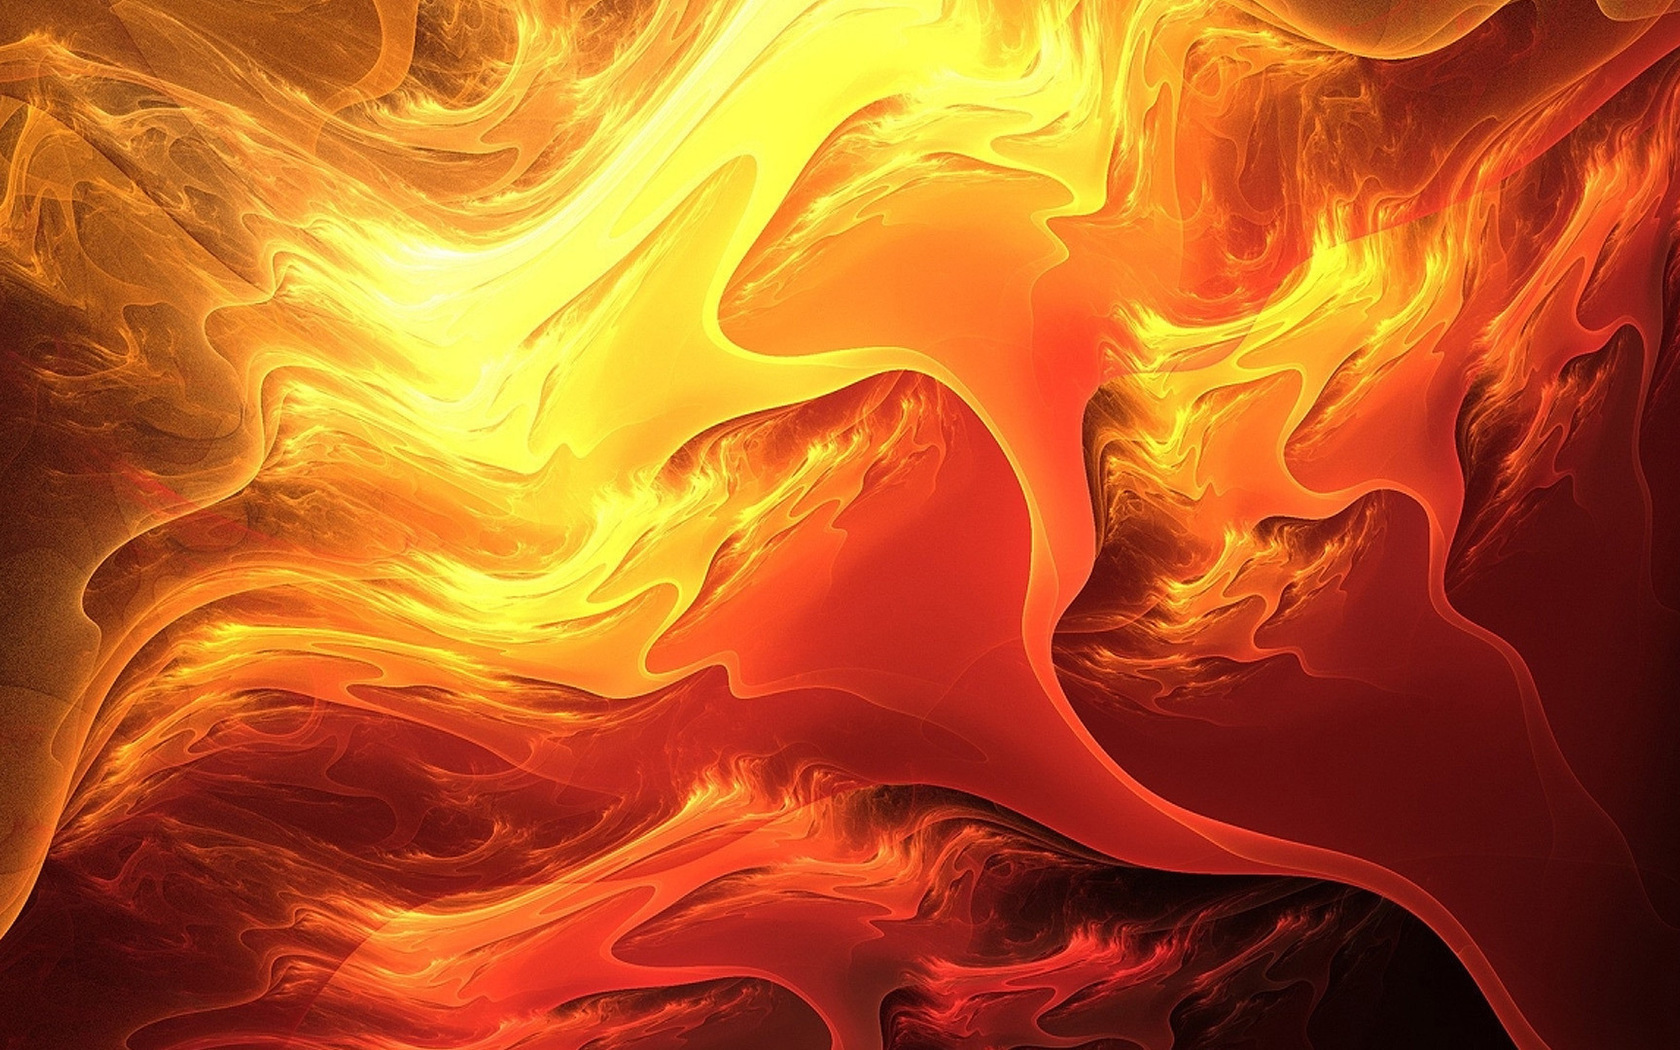 17895 download wallpaper Background, Fire screensavers and pictures for free